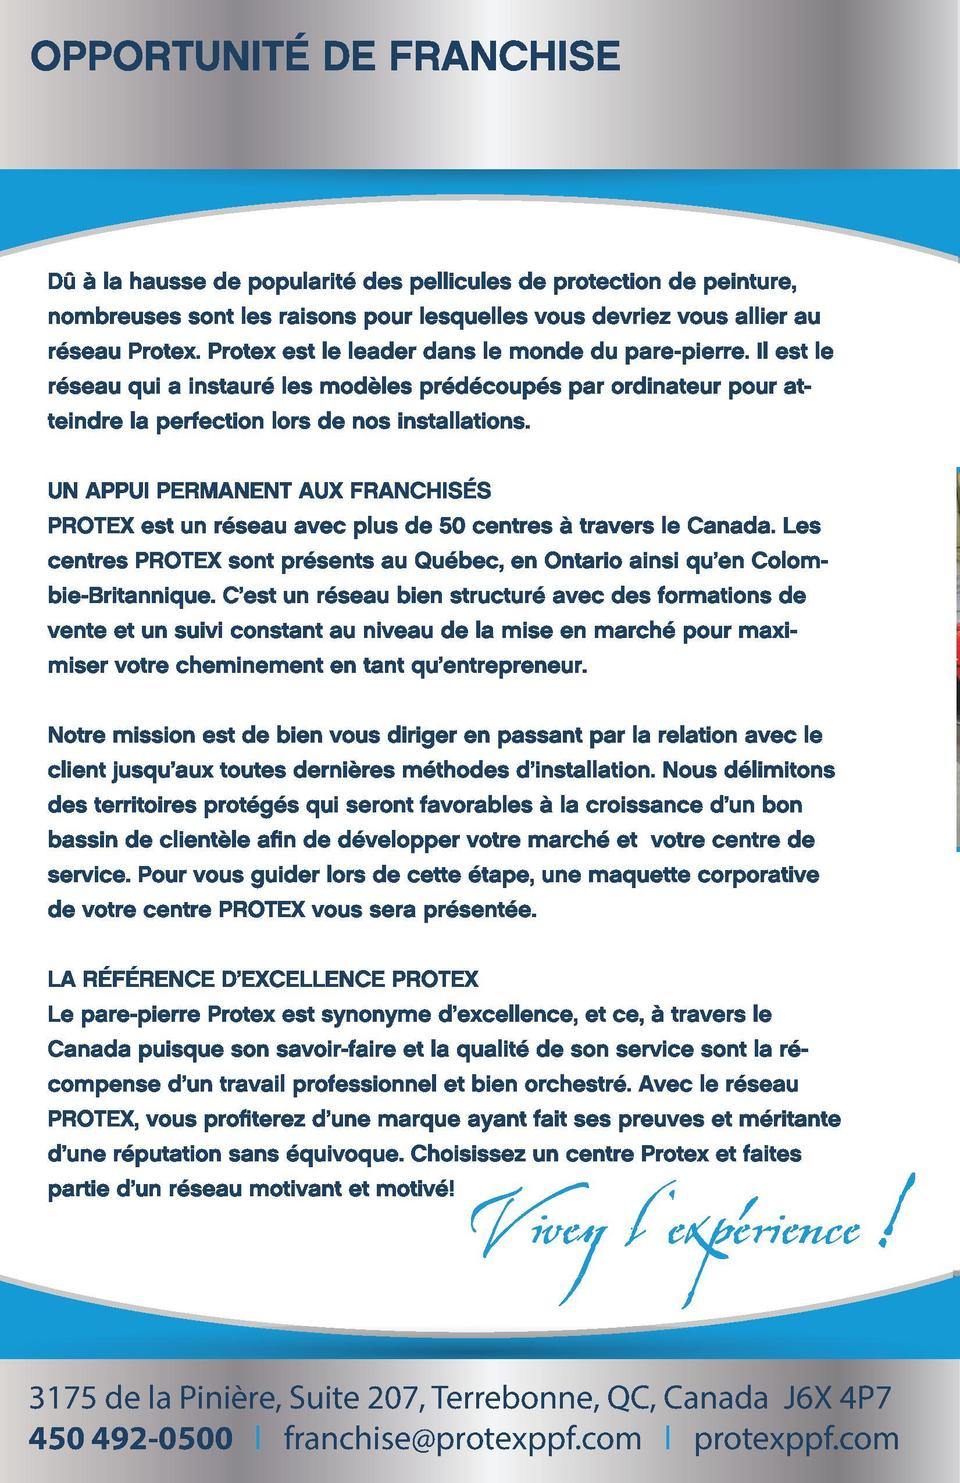 Protex Franchise_mode Cahier_FR.pdf  4  15-09-29  15 40  C  M  J  CM  MJ  CJ  CMJ  N  3175 de la Pini  re, Suite 207, Terr...